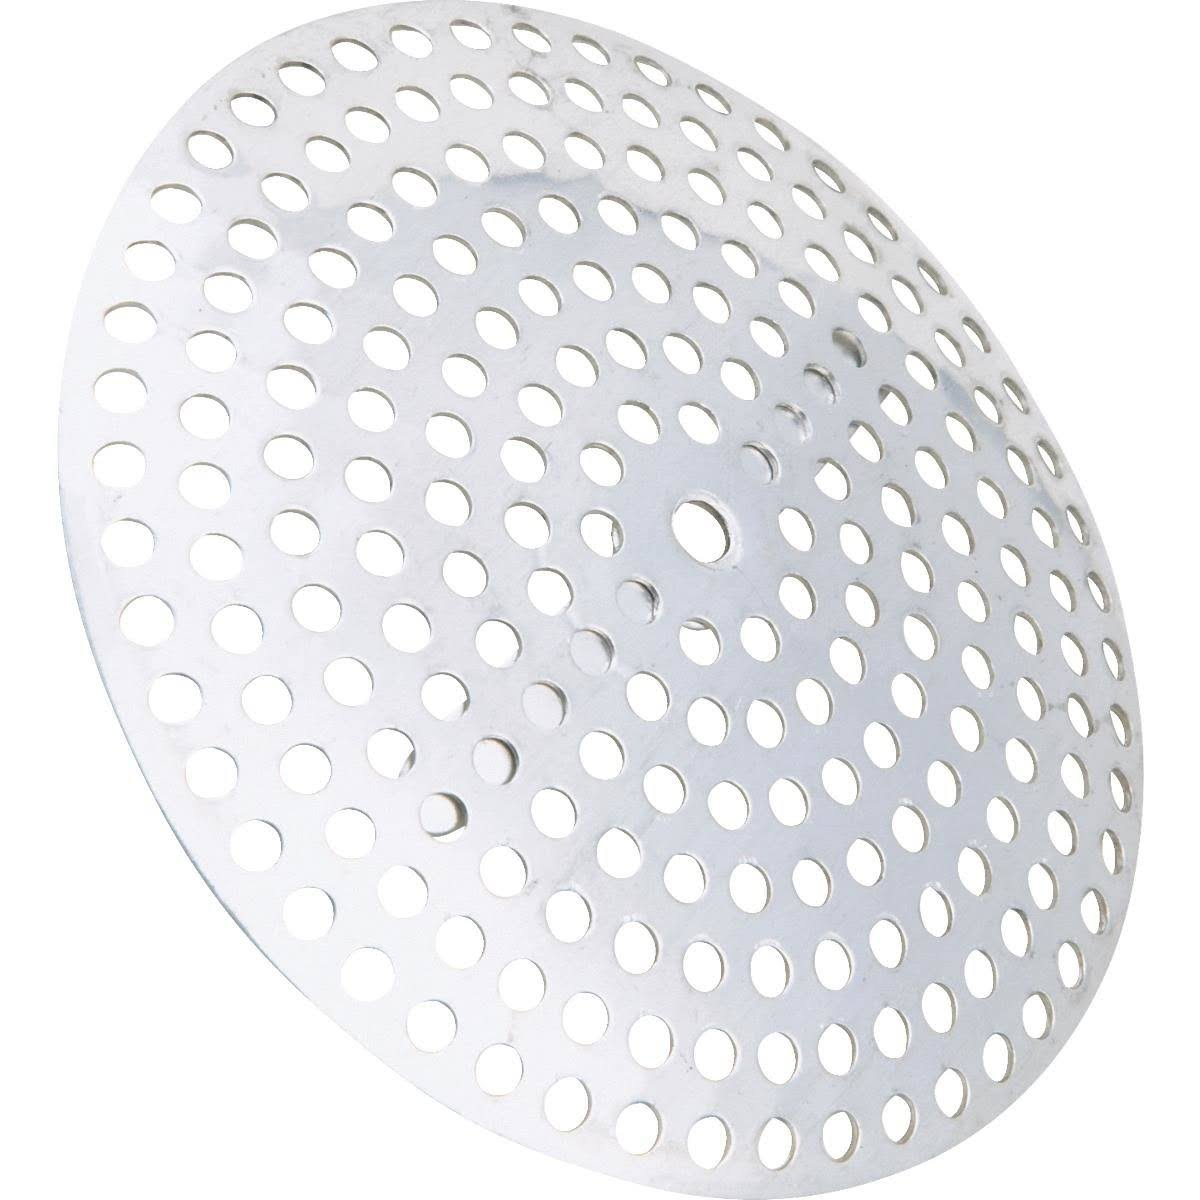 Do it Removable Drain Protector Strainer